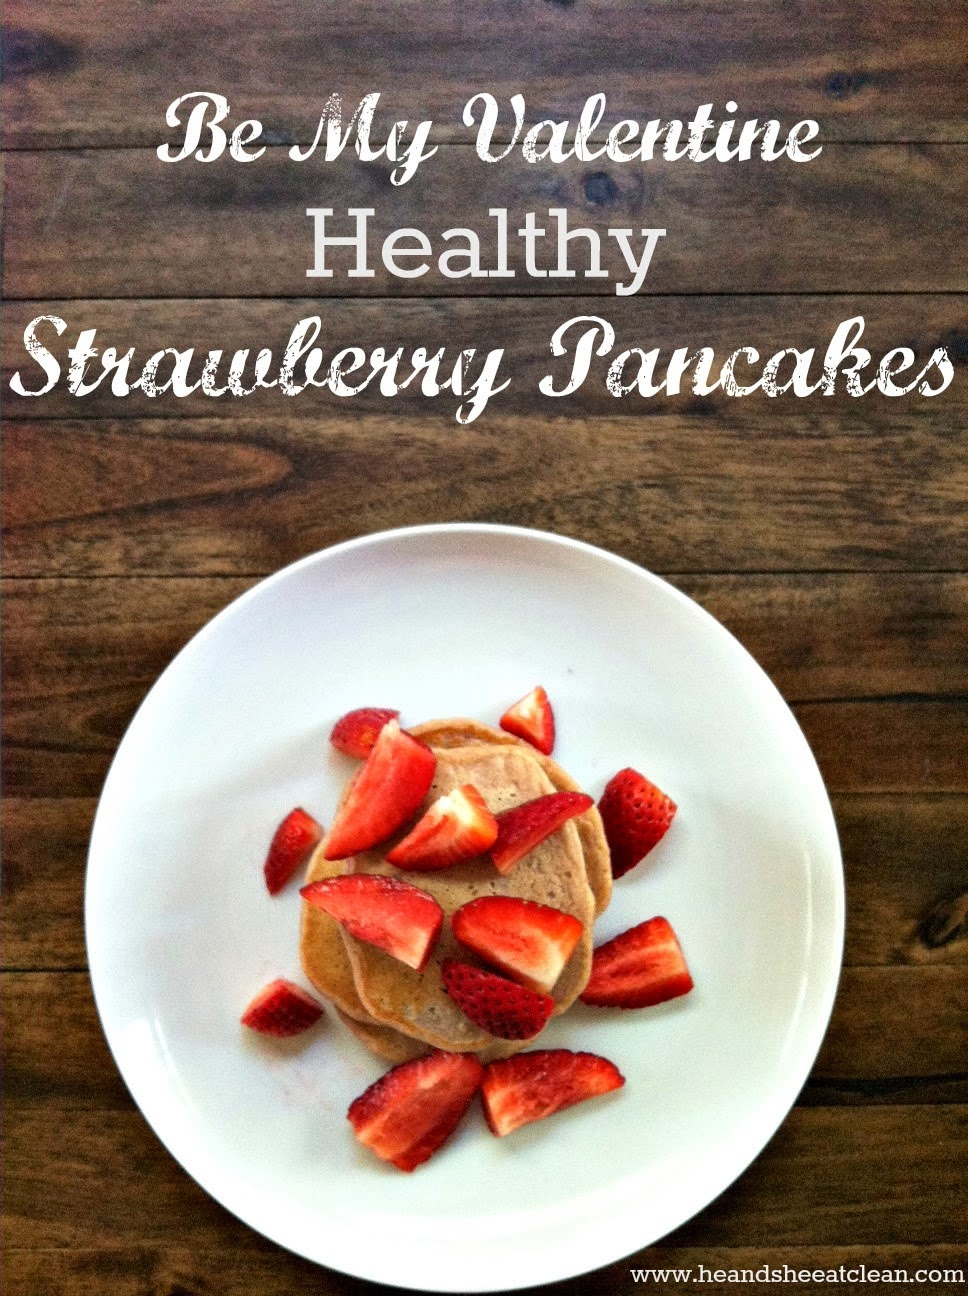 Clean-Eating-Gluten-Free-Strawberry-Fruit-Protein-Pancakes-Recipe-He-She-Eat-Clean-be-my-valentine-day-morning-good-for-kids-healthy.jpg